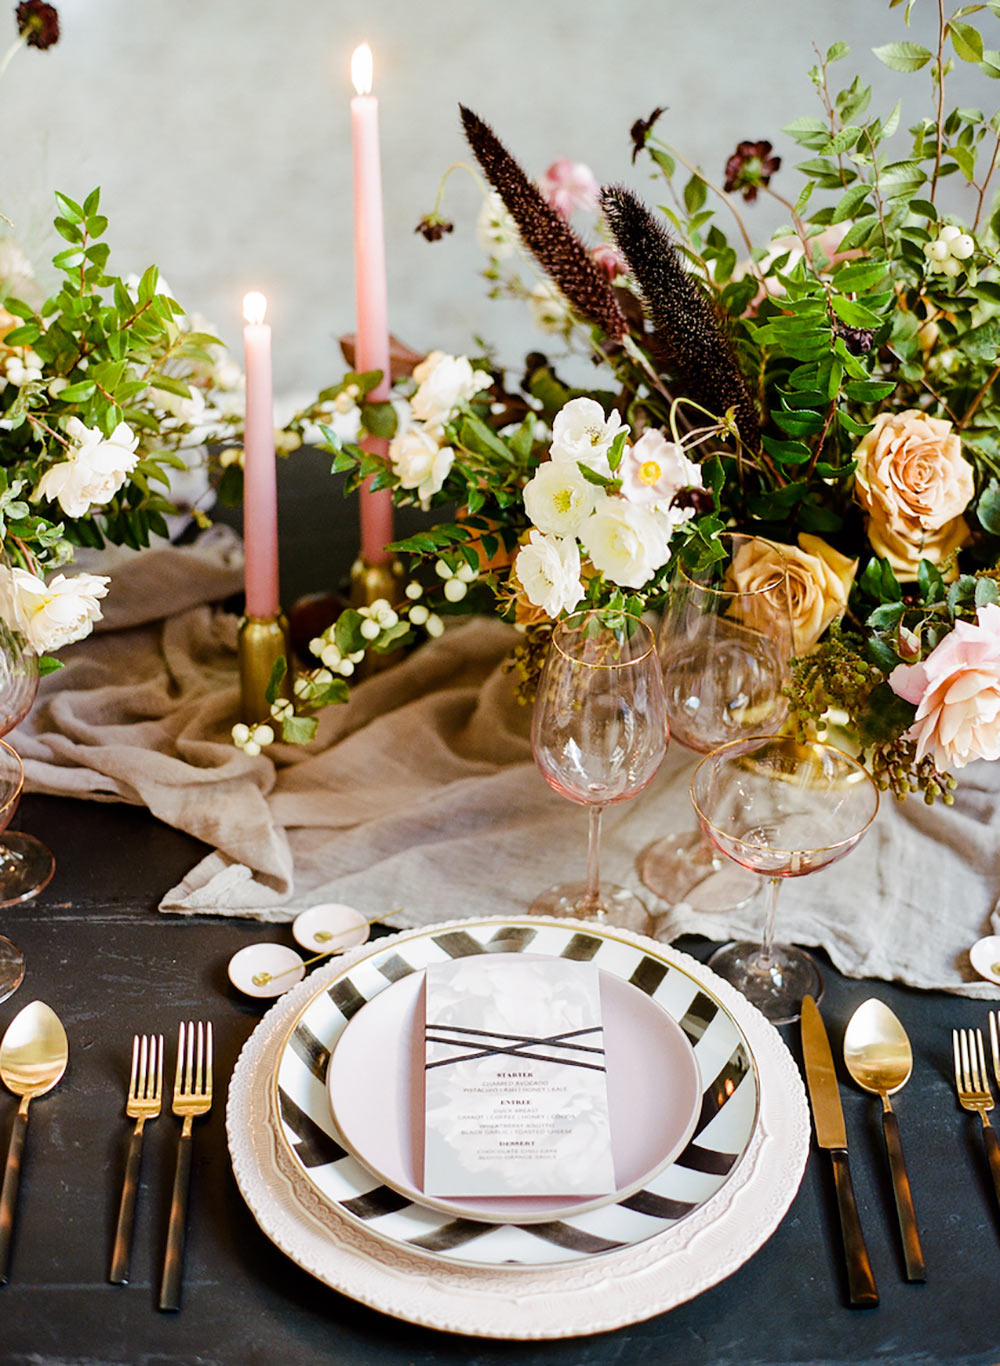 setting a table